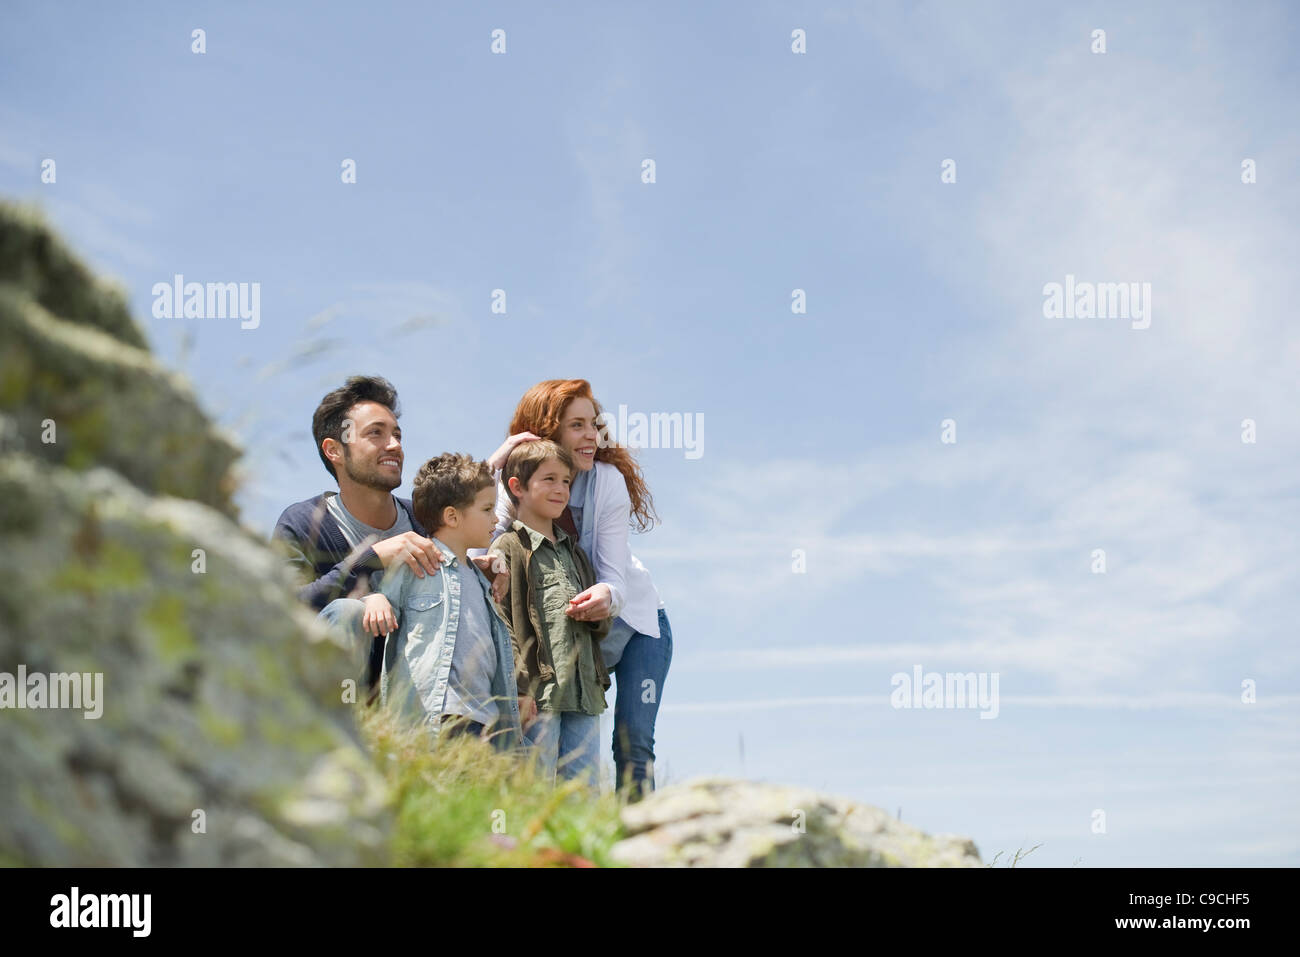 Parents and young boys in nature - Stock Image